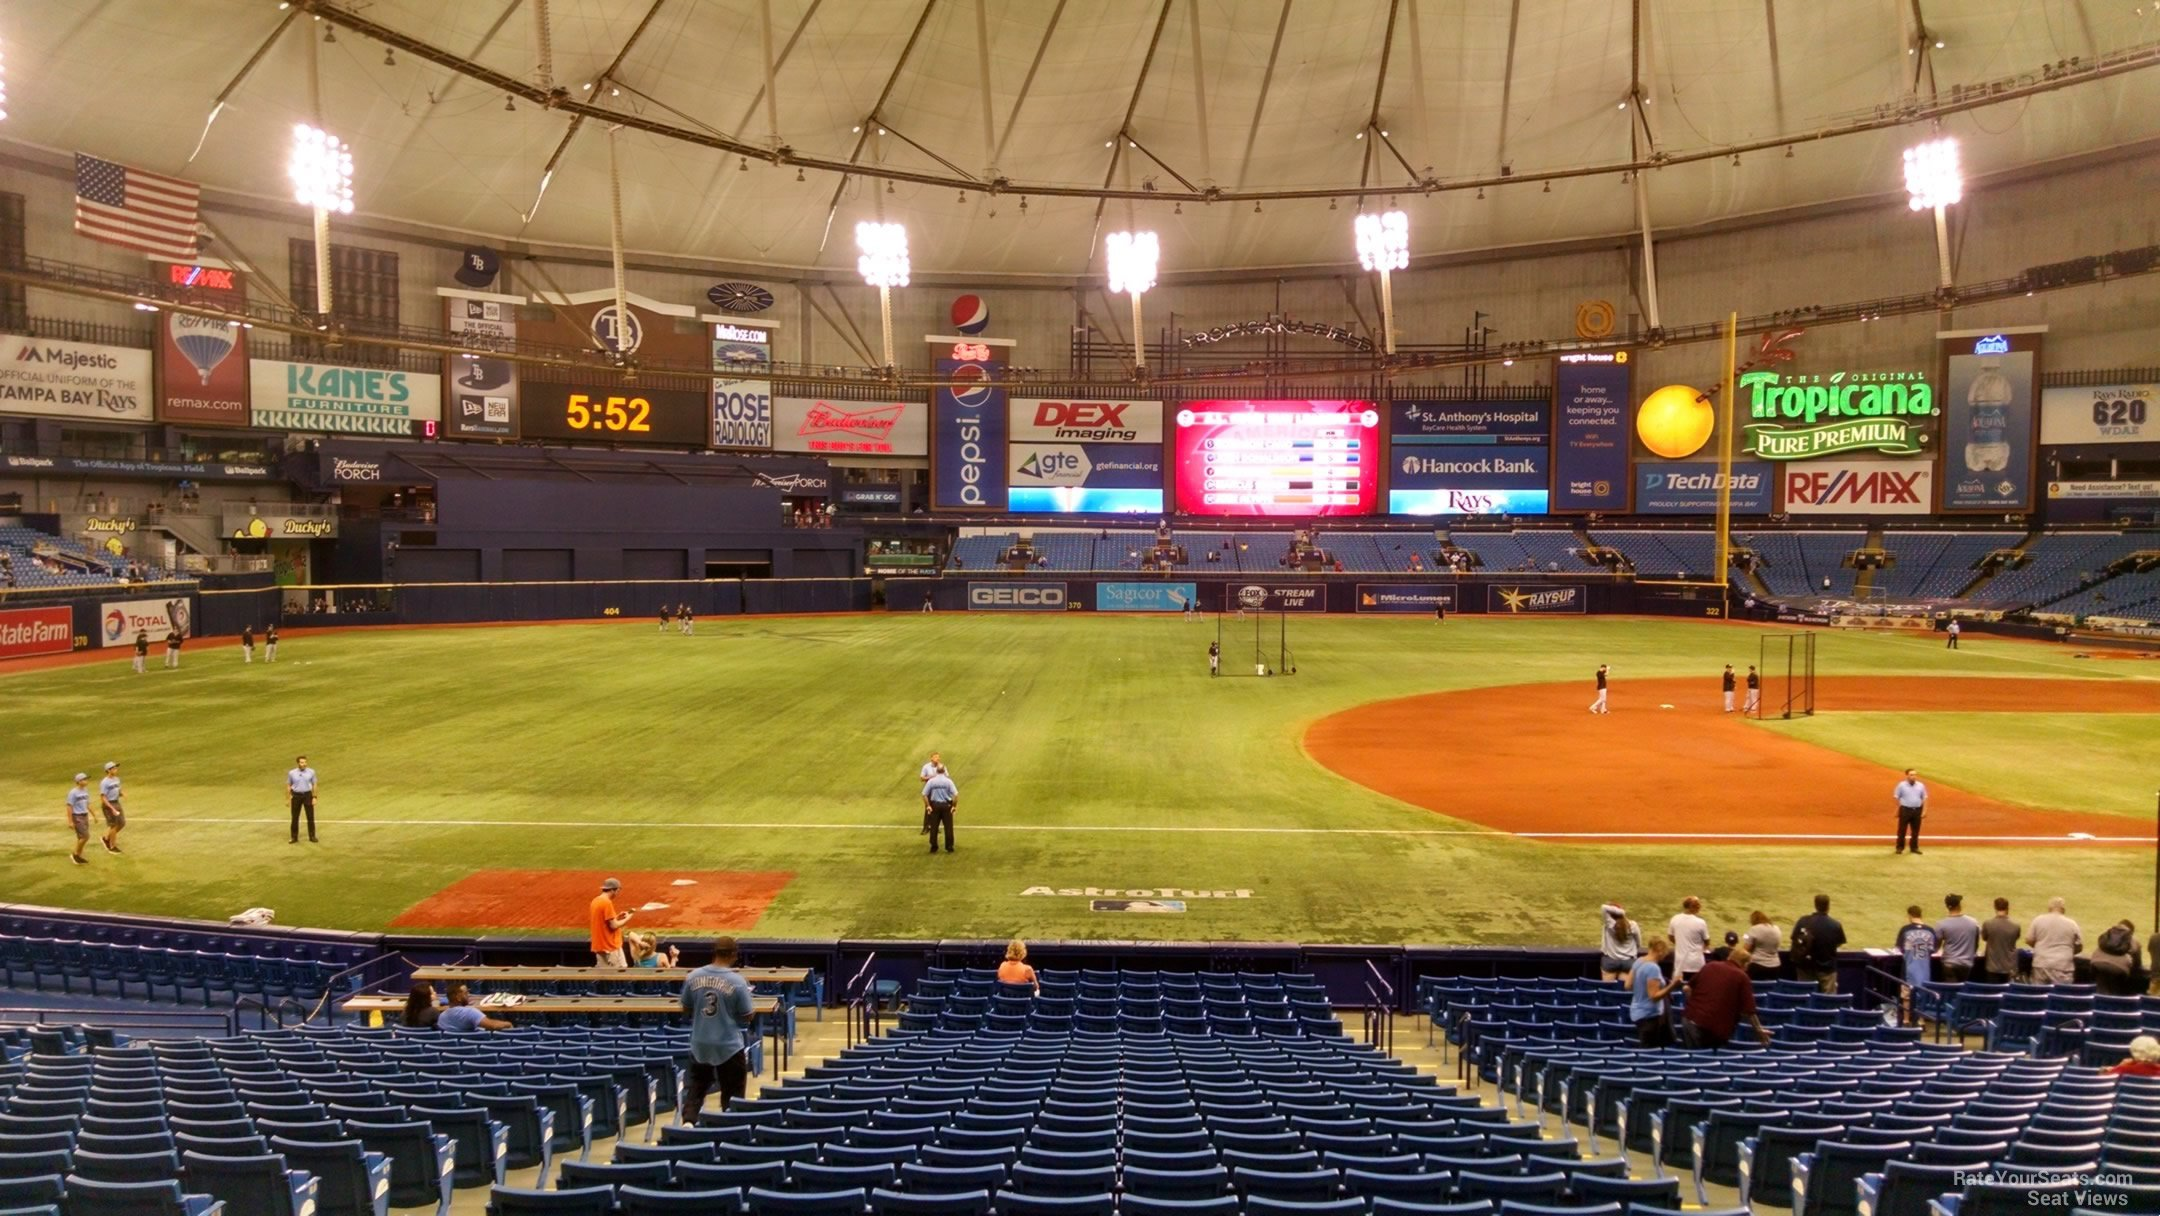 Third Row Seating >> Tropicana Field Section 123 - Tampa Bay Rays - RateYourSeats.com